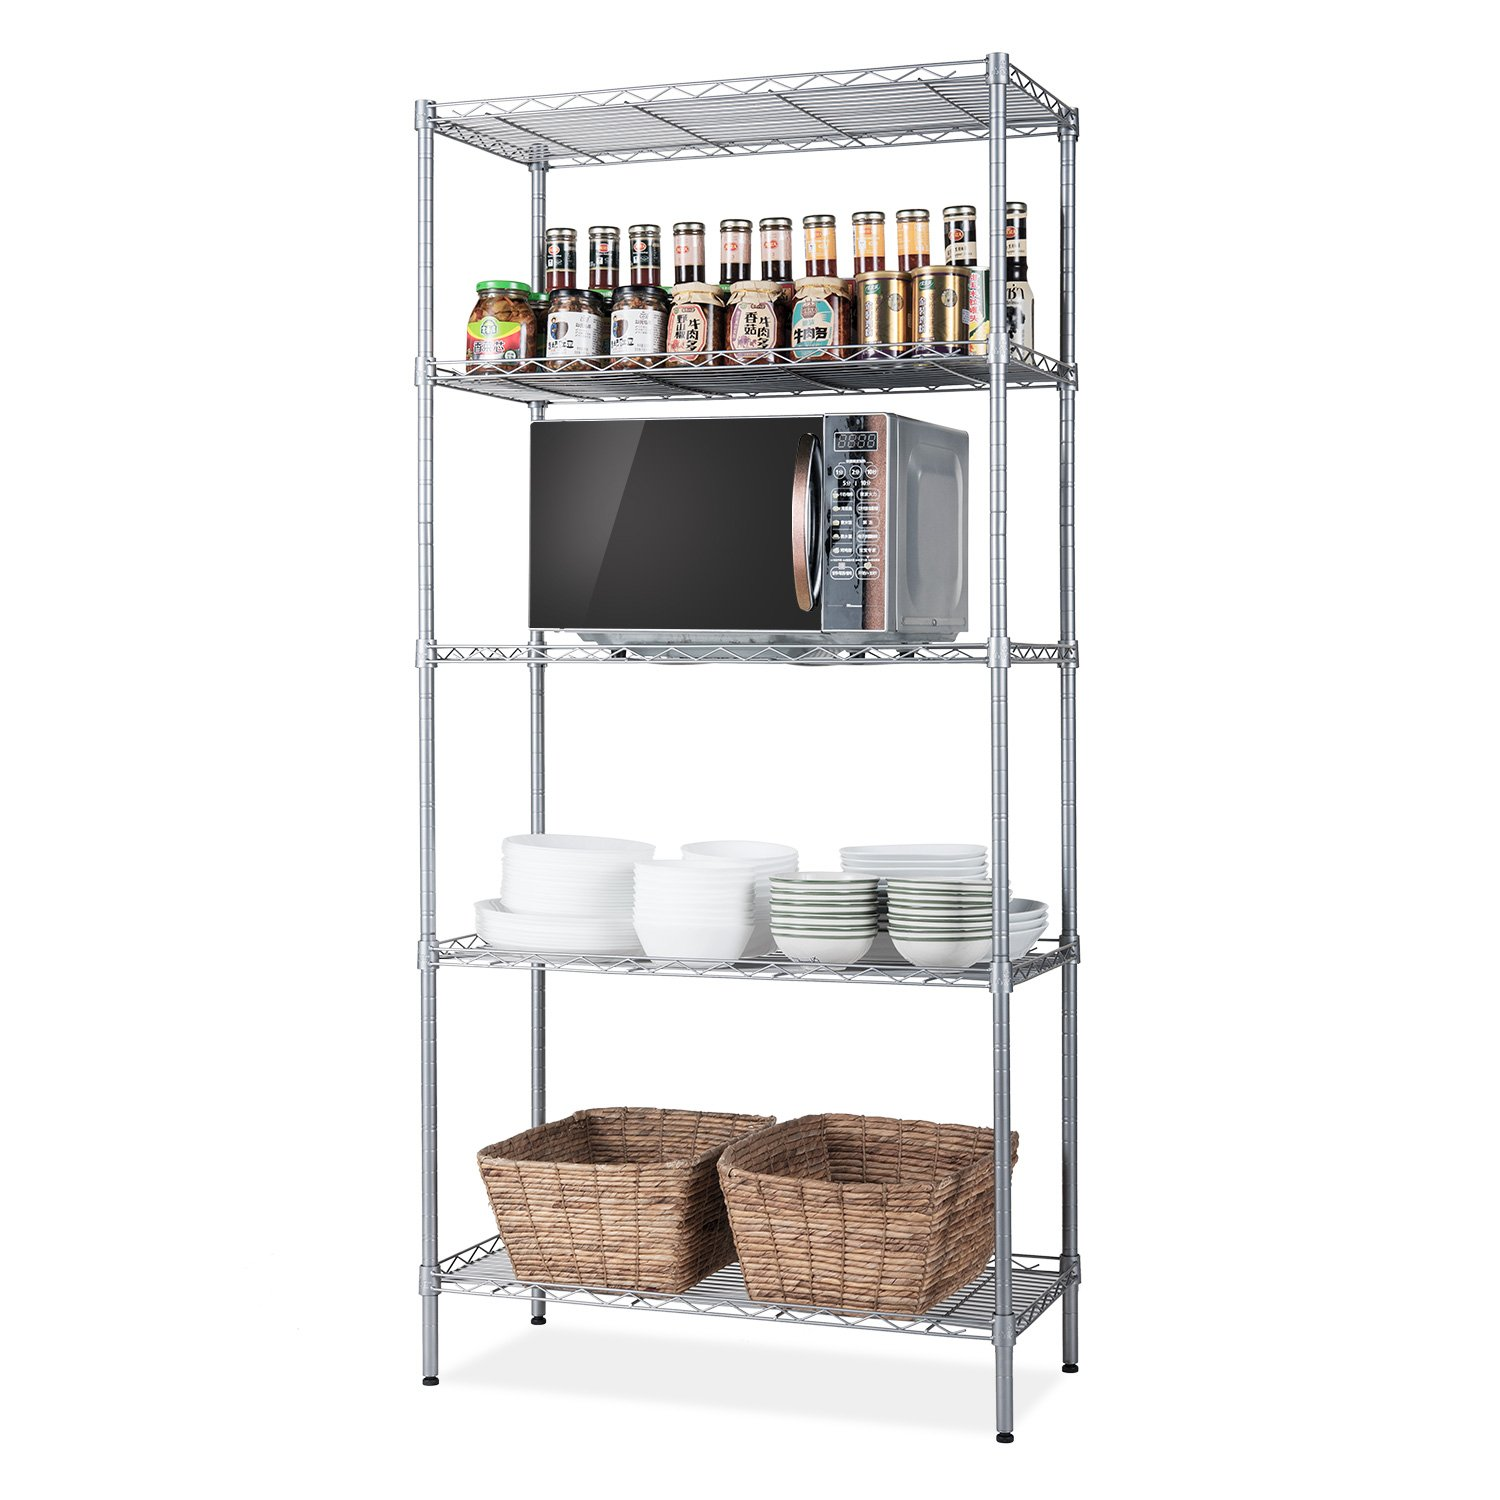 "SINGAYE Storage Rack Silver 5-Tier Mesh Shelving Unit Storage Shelves Metal for Pantry Closet Kitchen Laundry 23.6"" L x 14"" W x 59.1"" H"